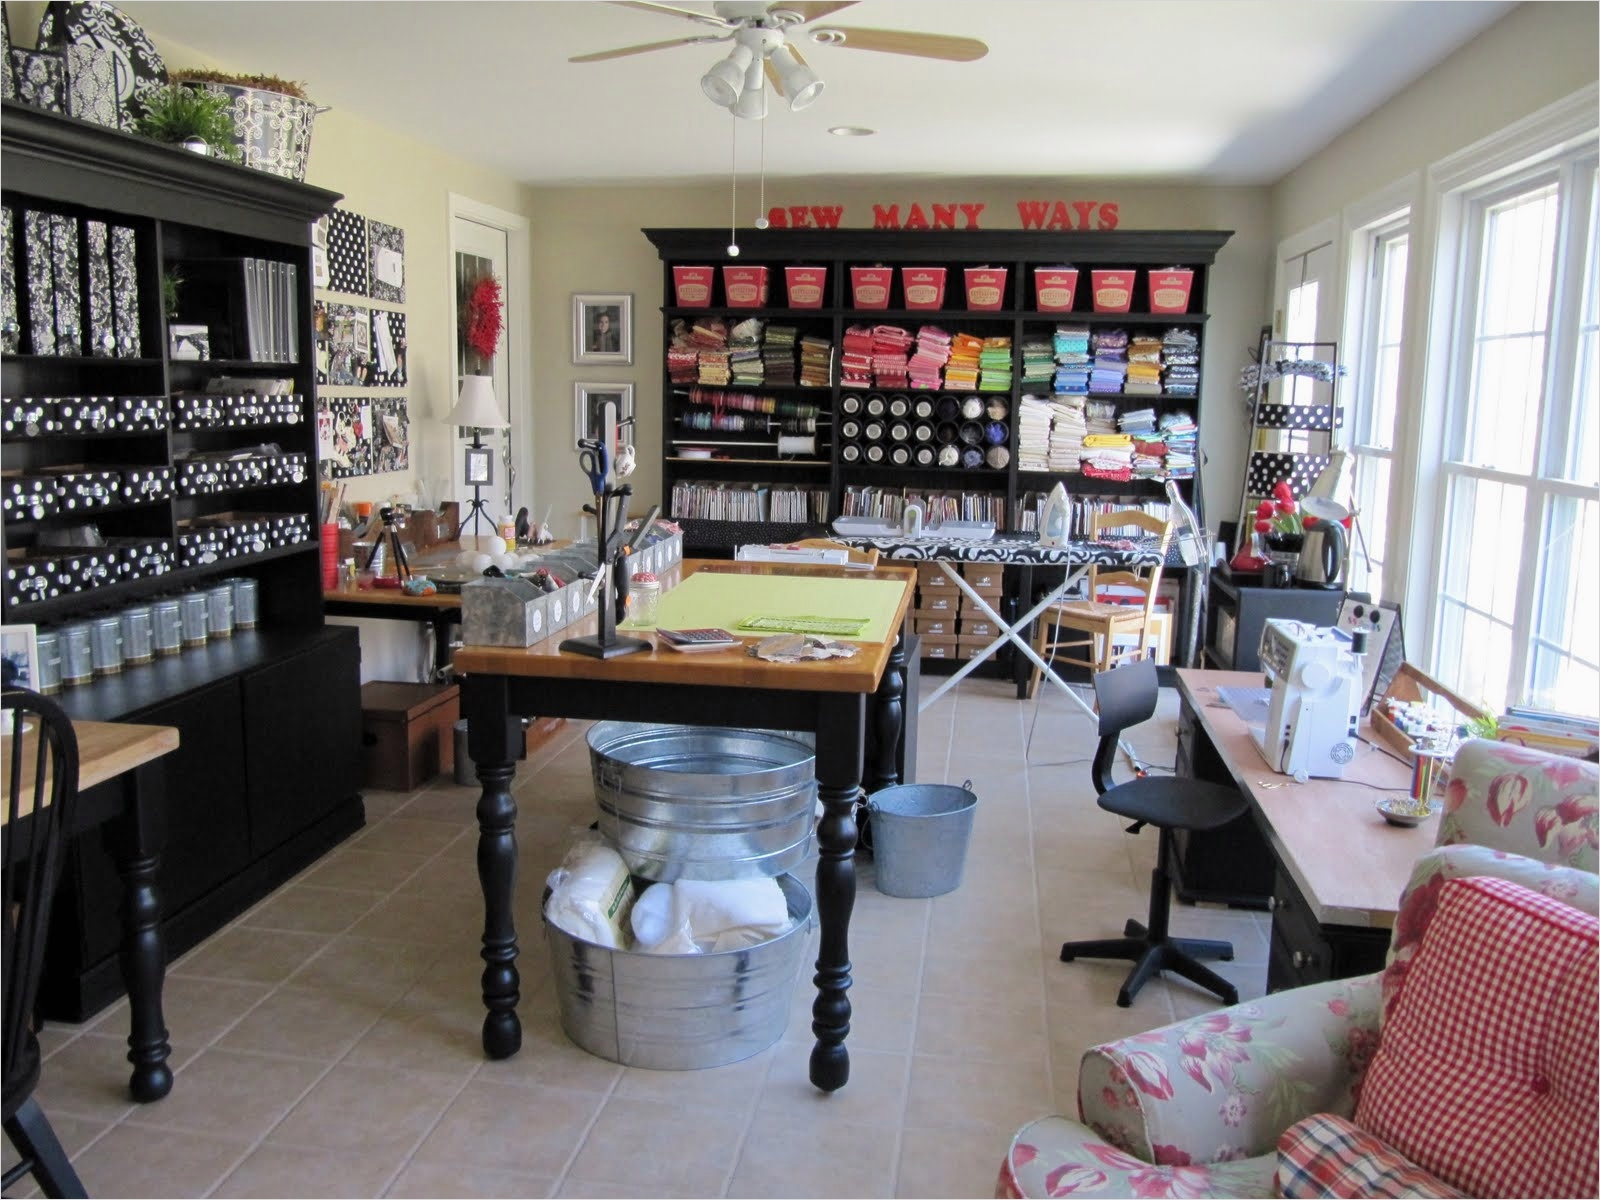 40 Creative Sewing Room Storage Ideas 69 Sew Many Ways Sewing Craft Room Ideas and Updates 5